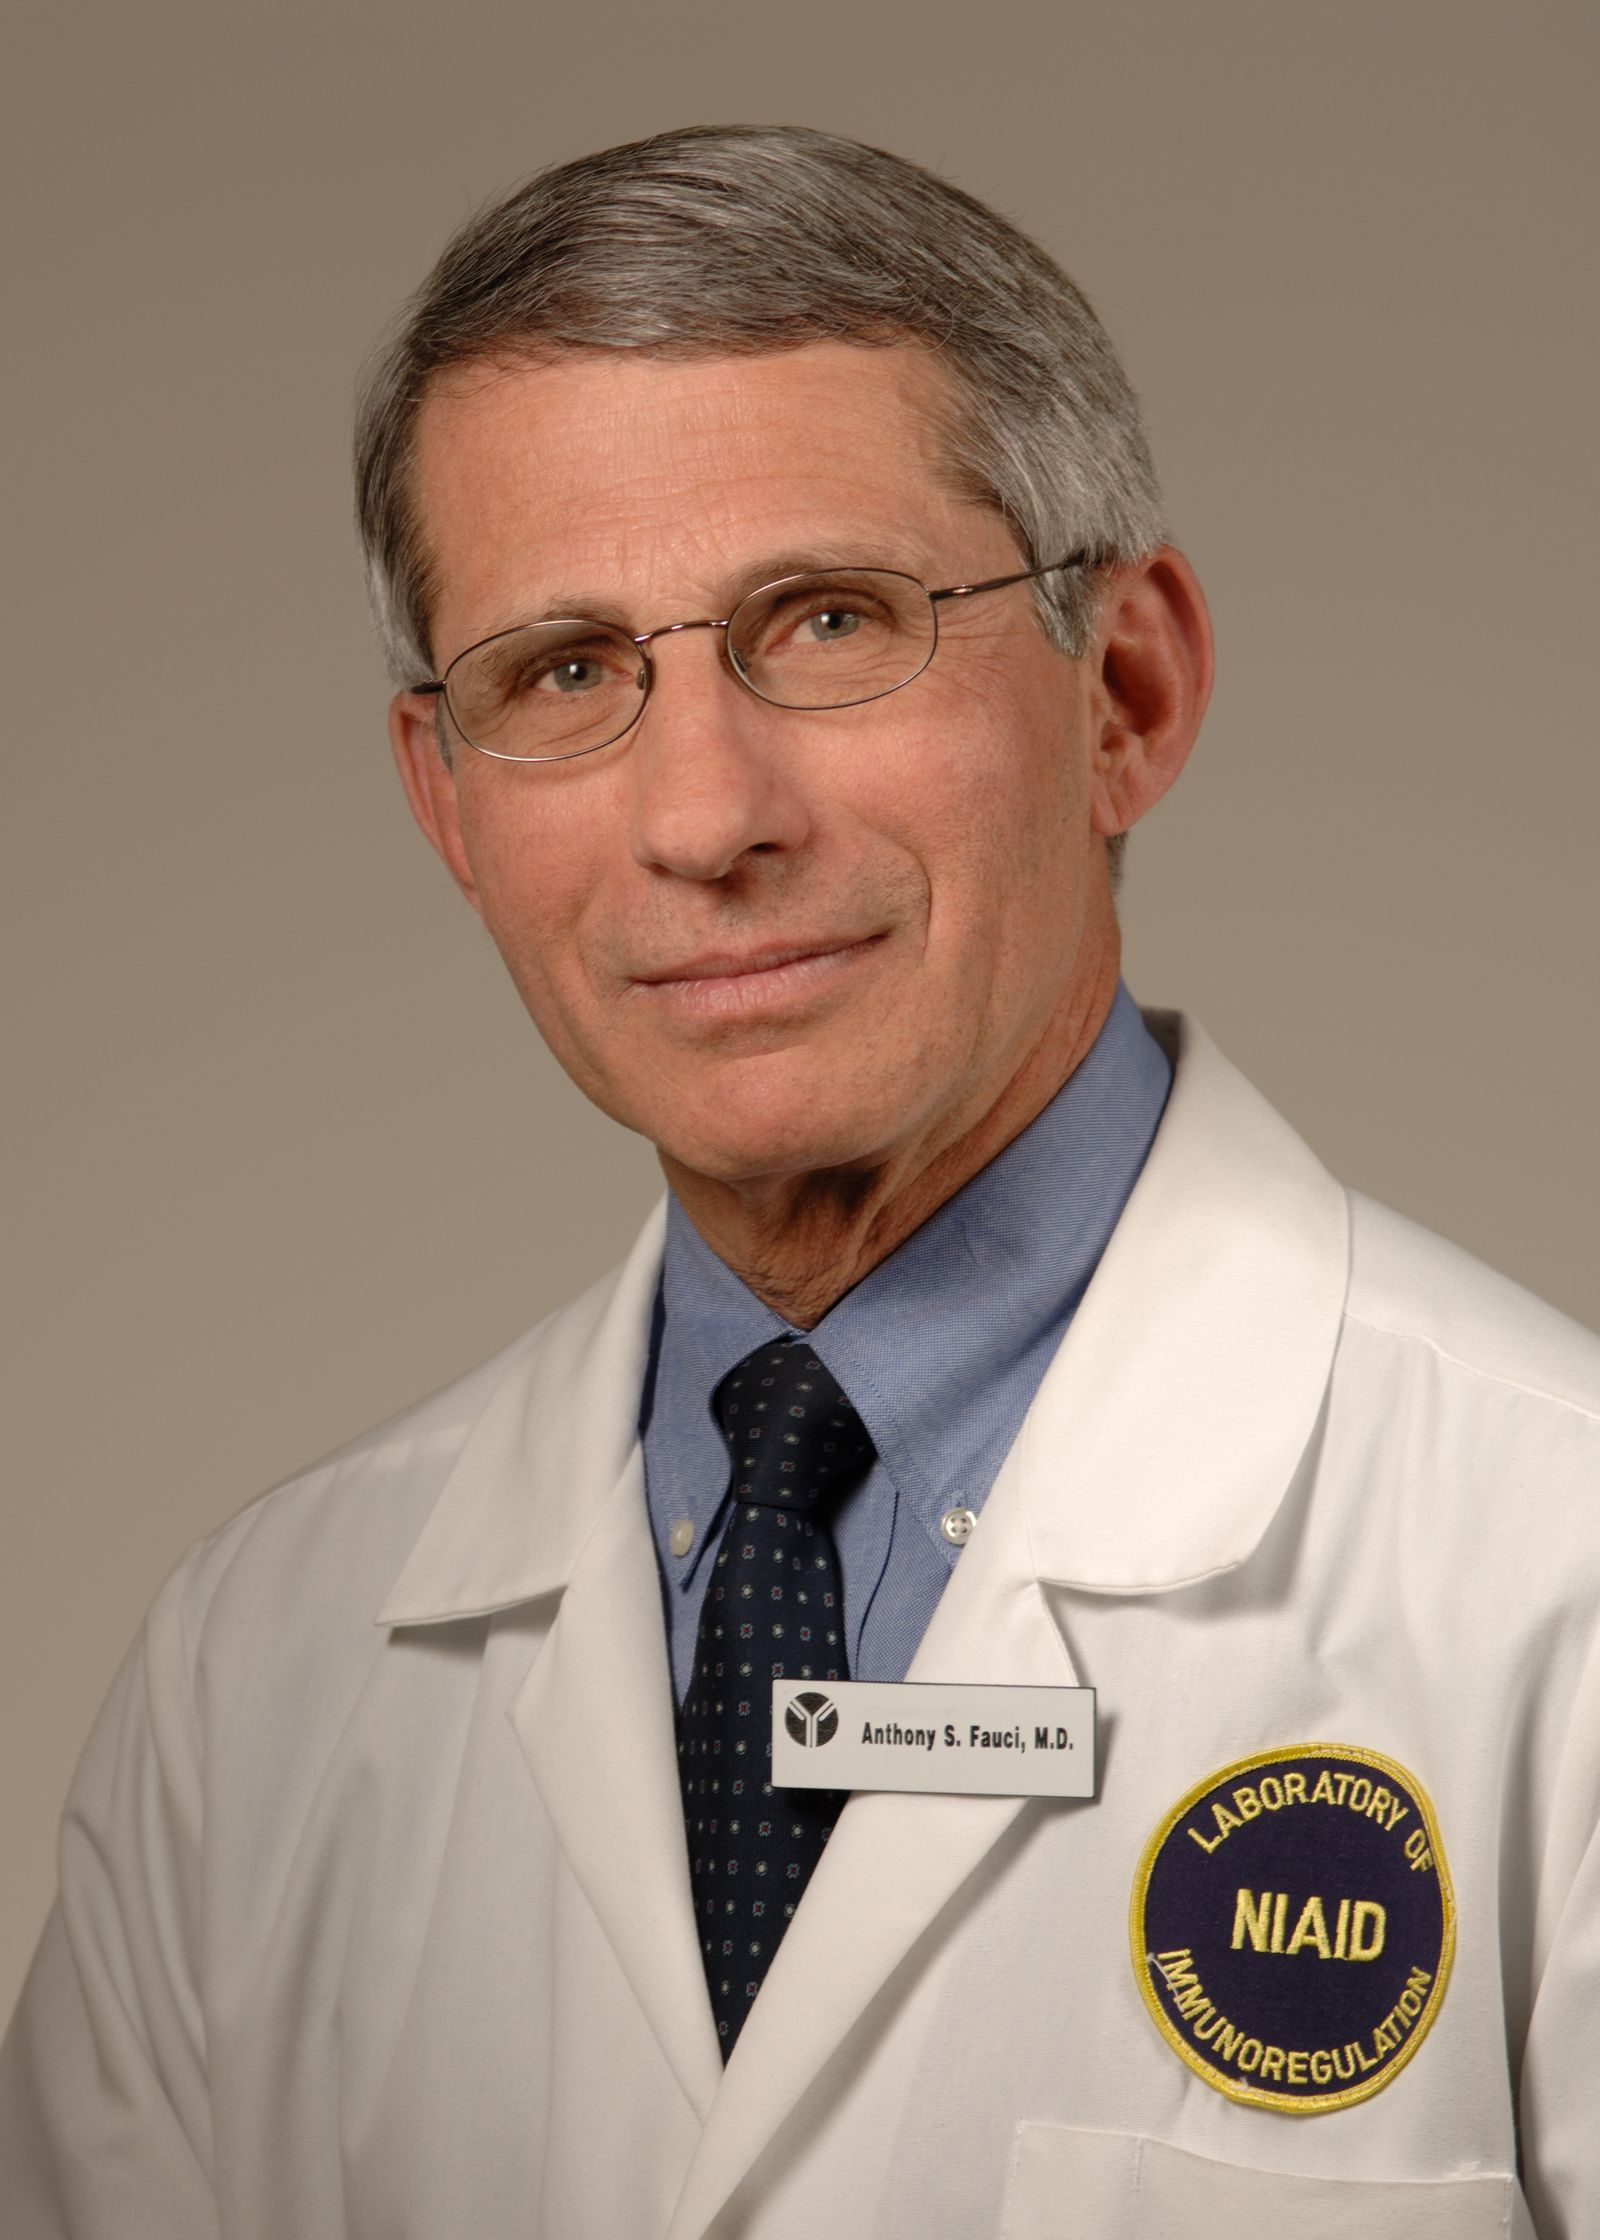 Doctor Anthony Fauci Medical Memes Anthony Infectious Disease